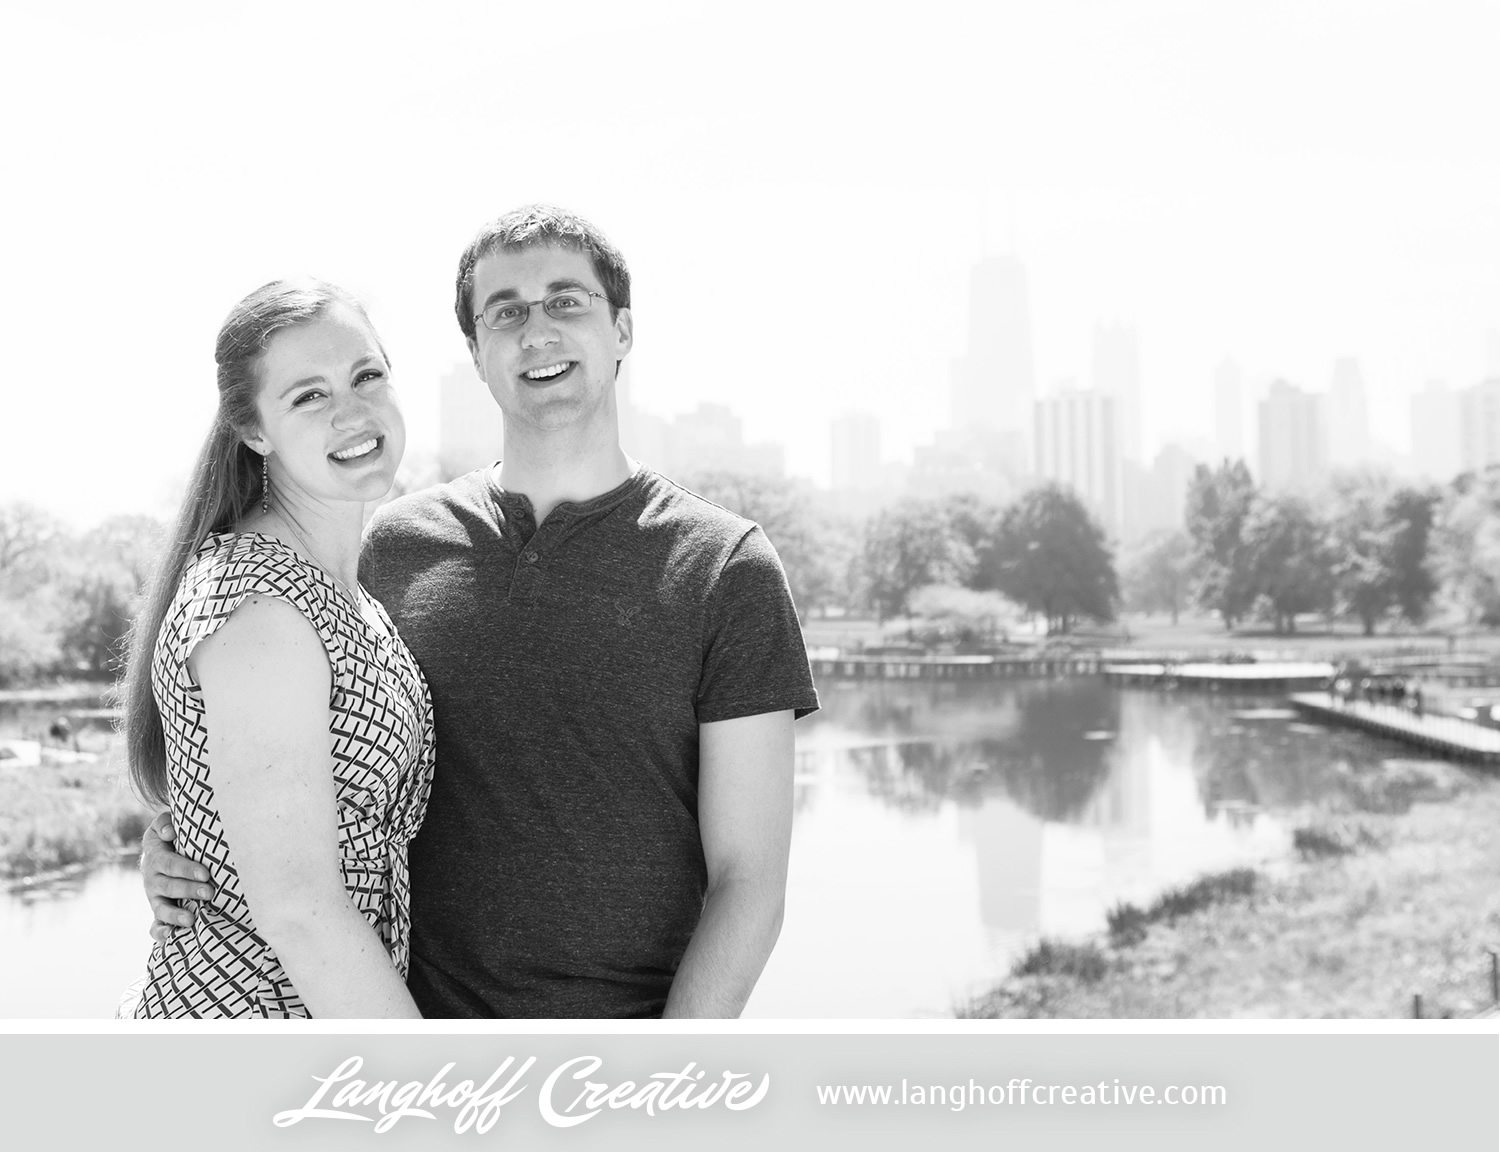 ChicagoEngagement-LincolnParkZoo-Engaged-LanghoffCreative-DestinationWeddingPhotographers-2014-ZacRachel-3-photo.jpg